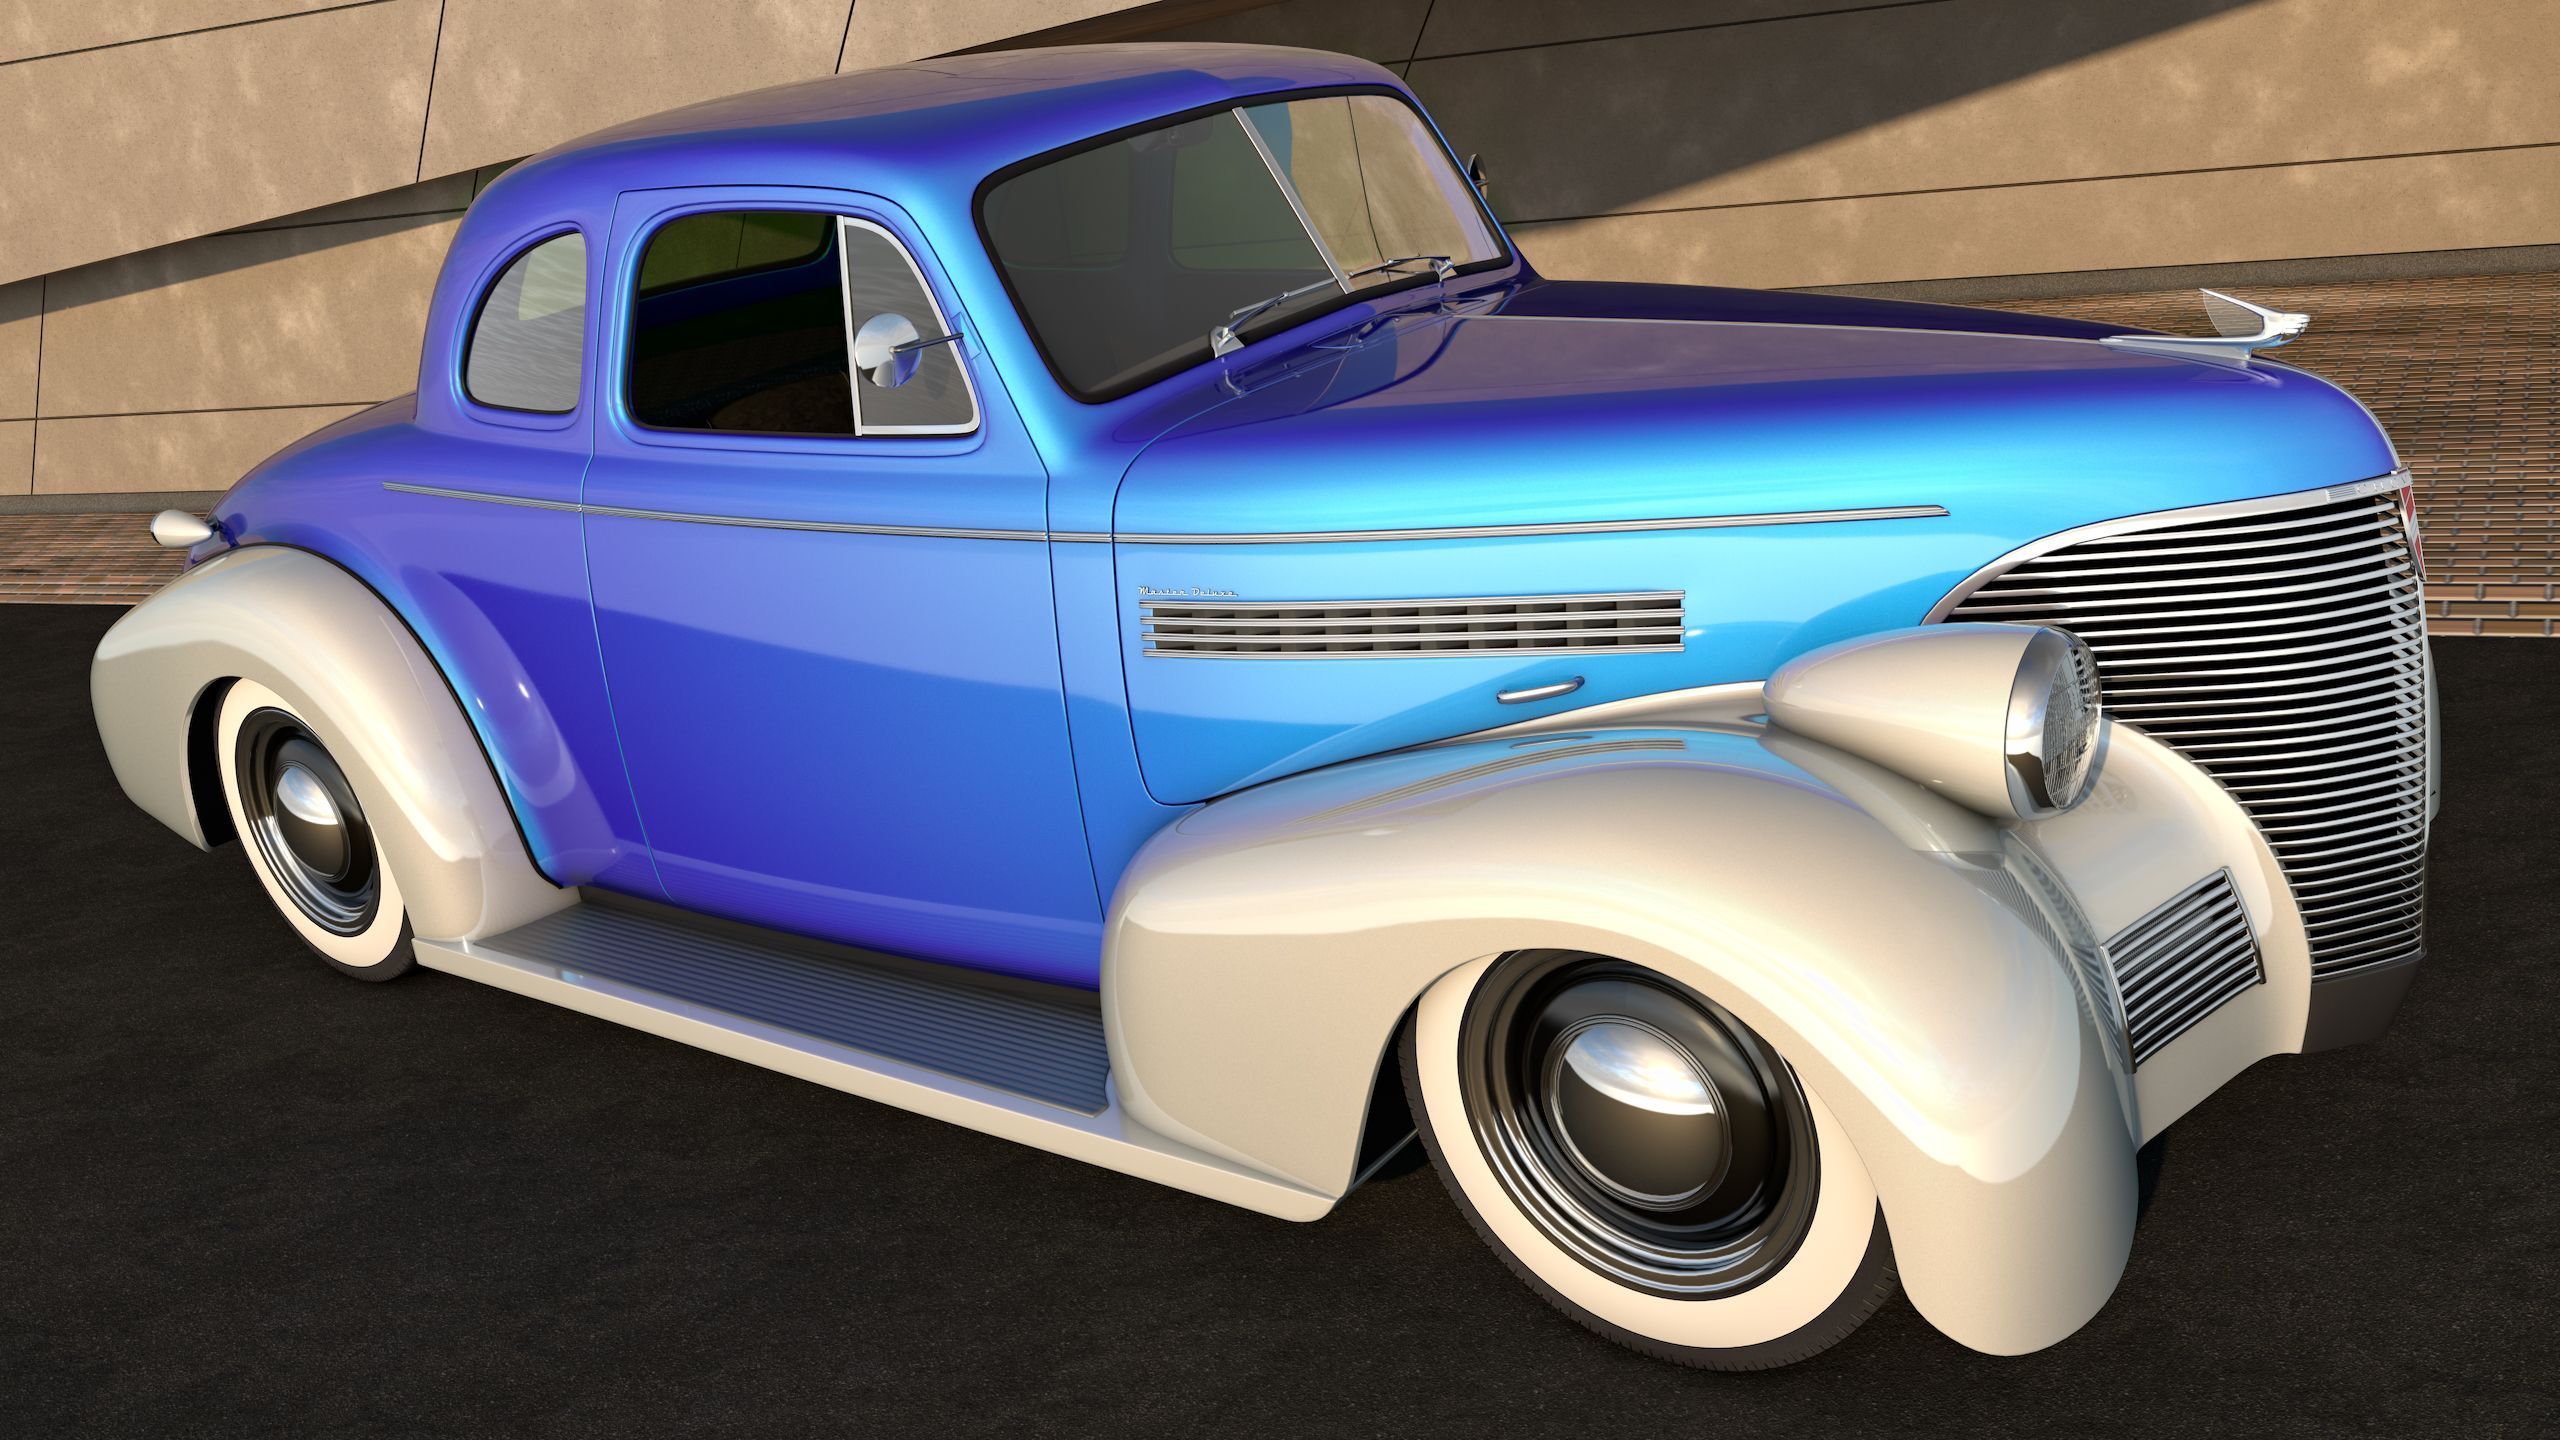 1939 Chevy Master Deluxe Coupe Classic Cars Vintage Chevy Classic Classic Cars